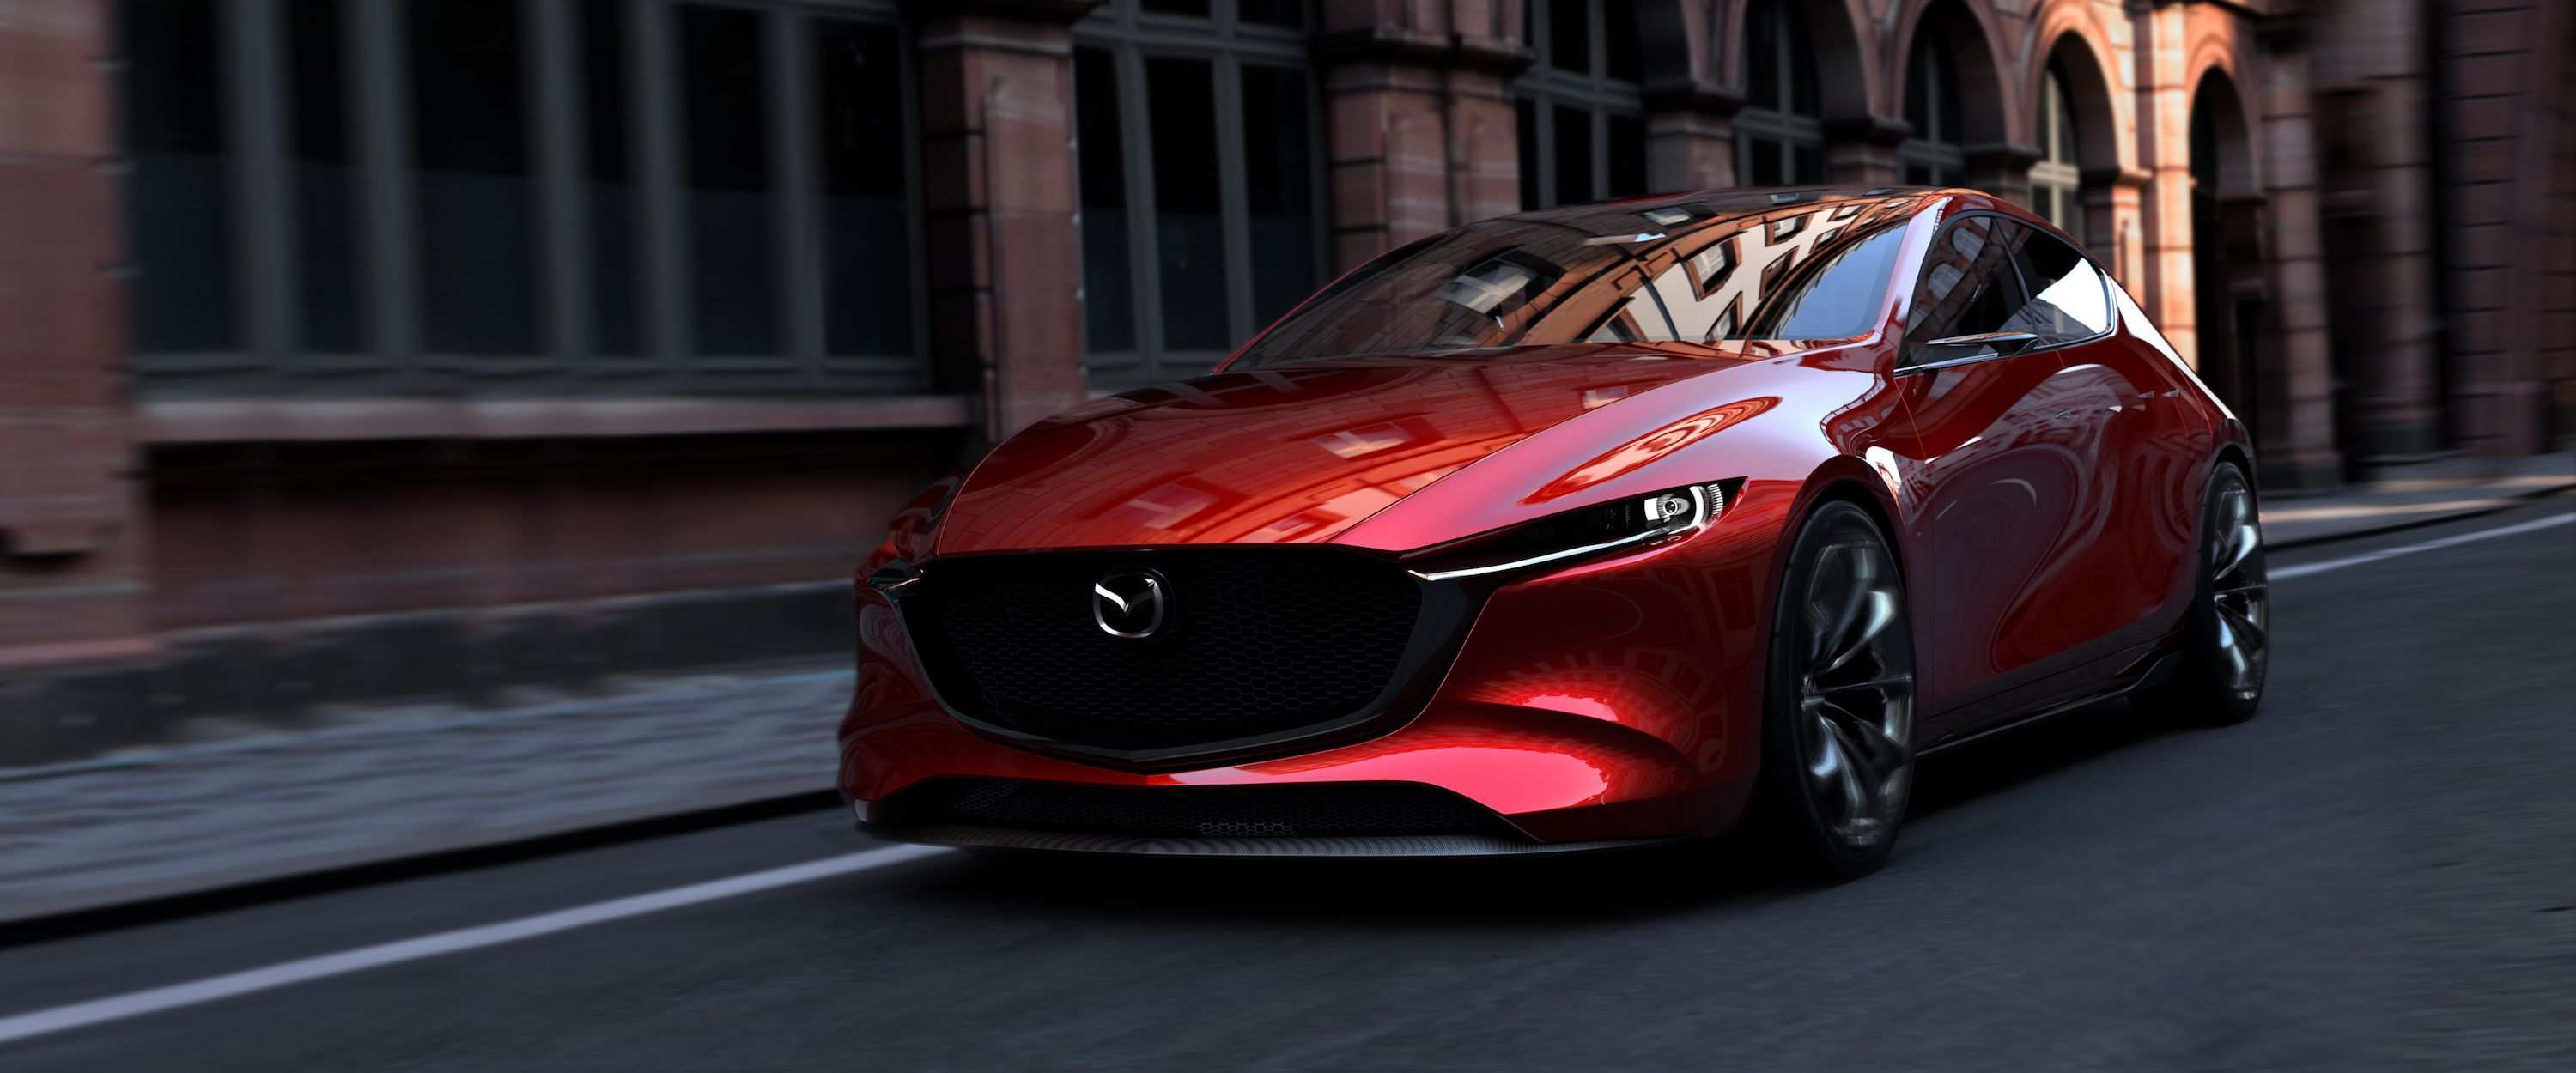 63 Gallery of Mazda 3 Kai 2020 History with Mazda 3 Kai 2020